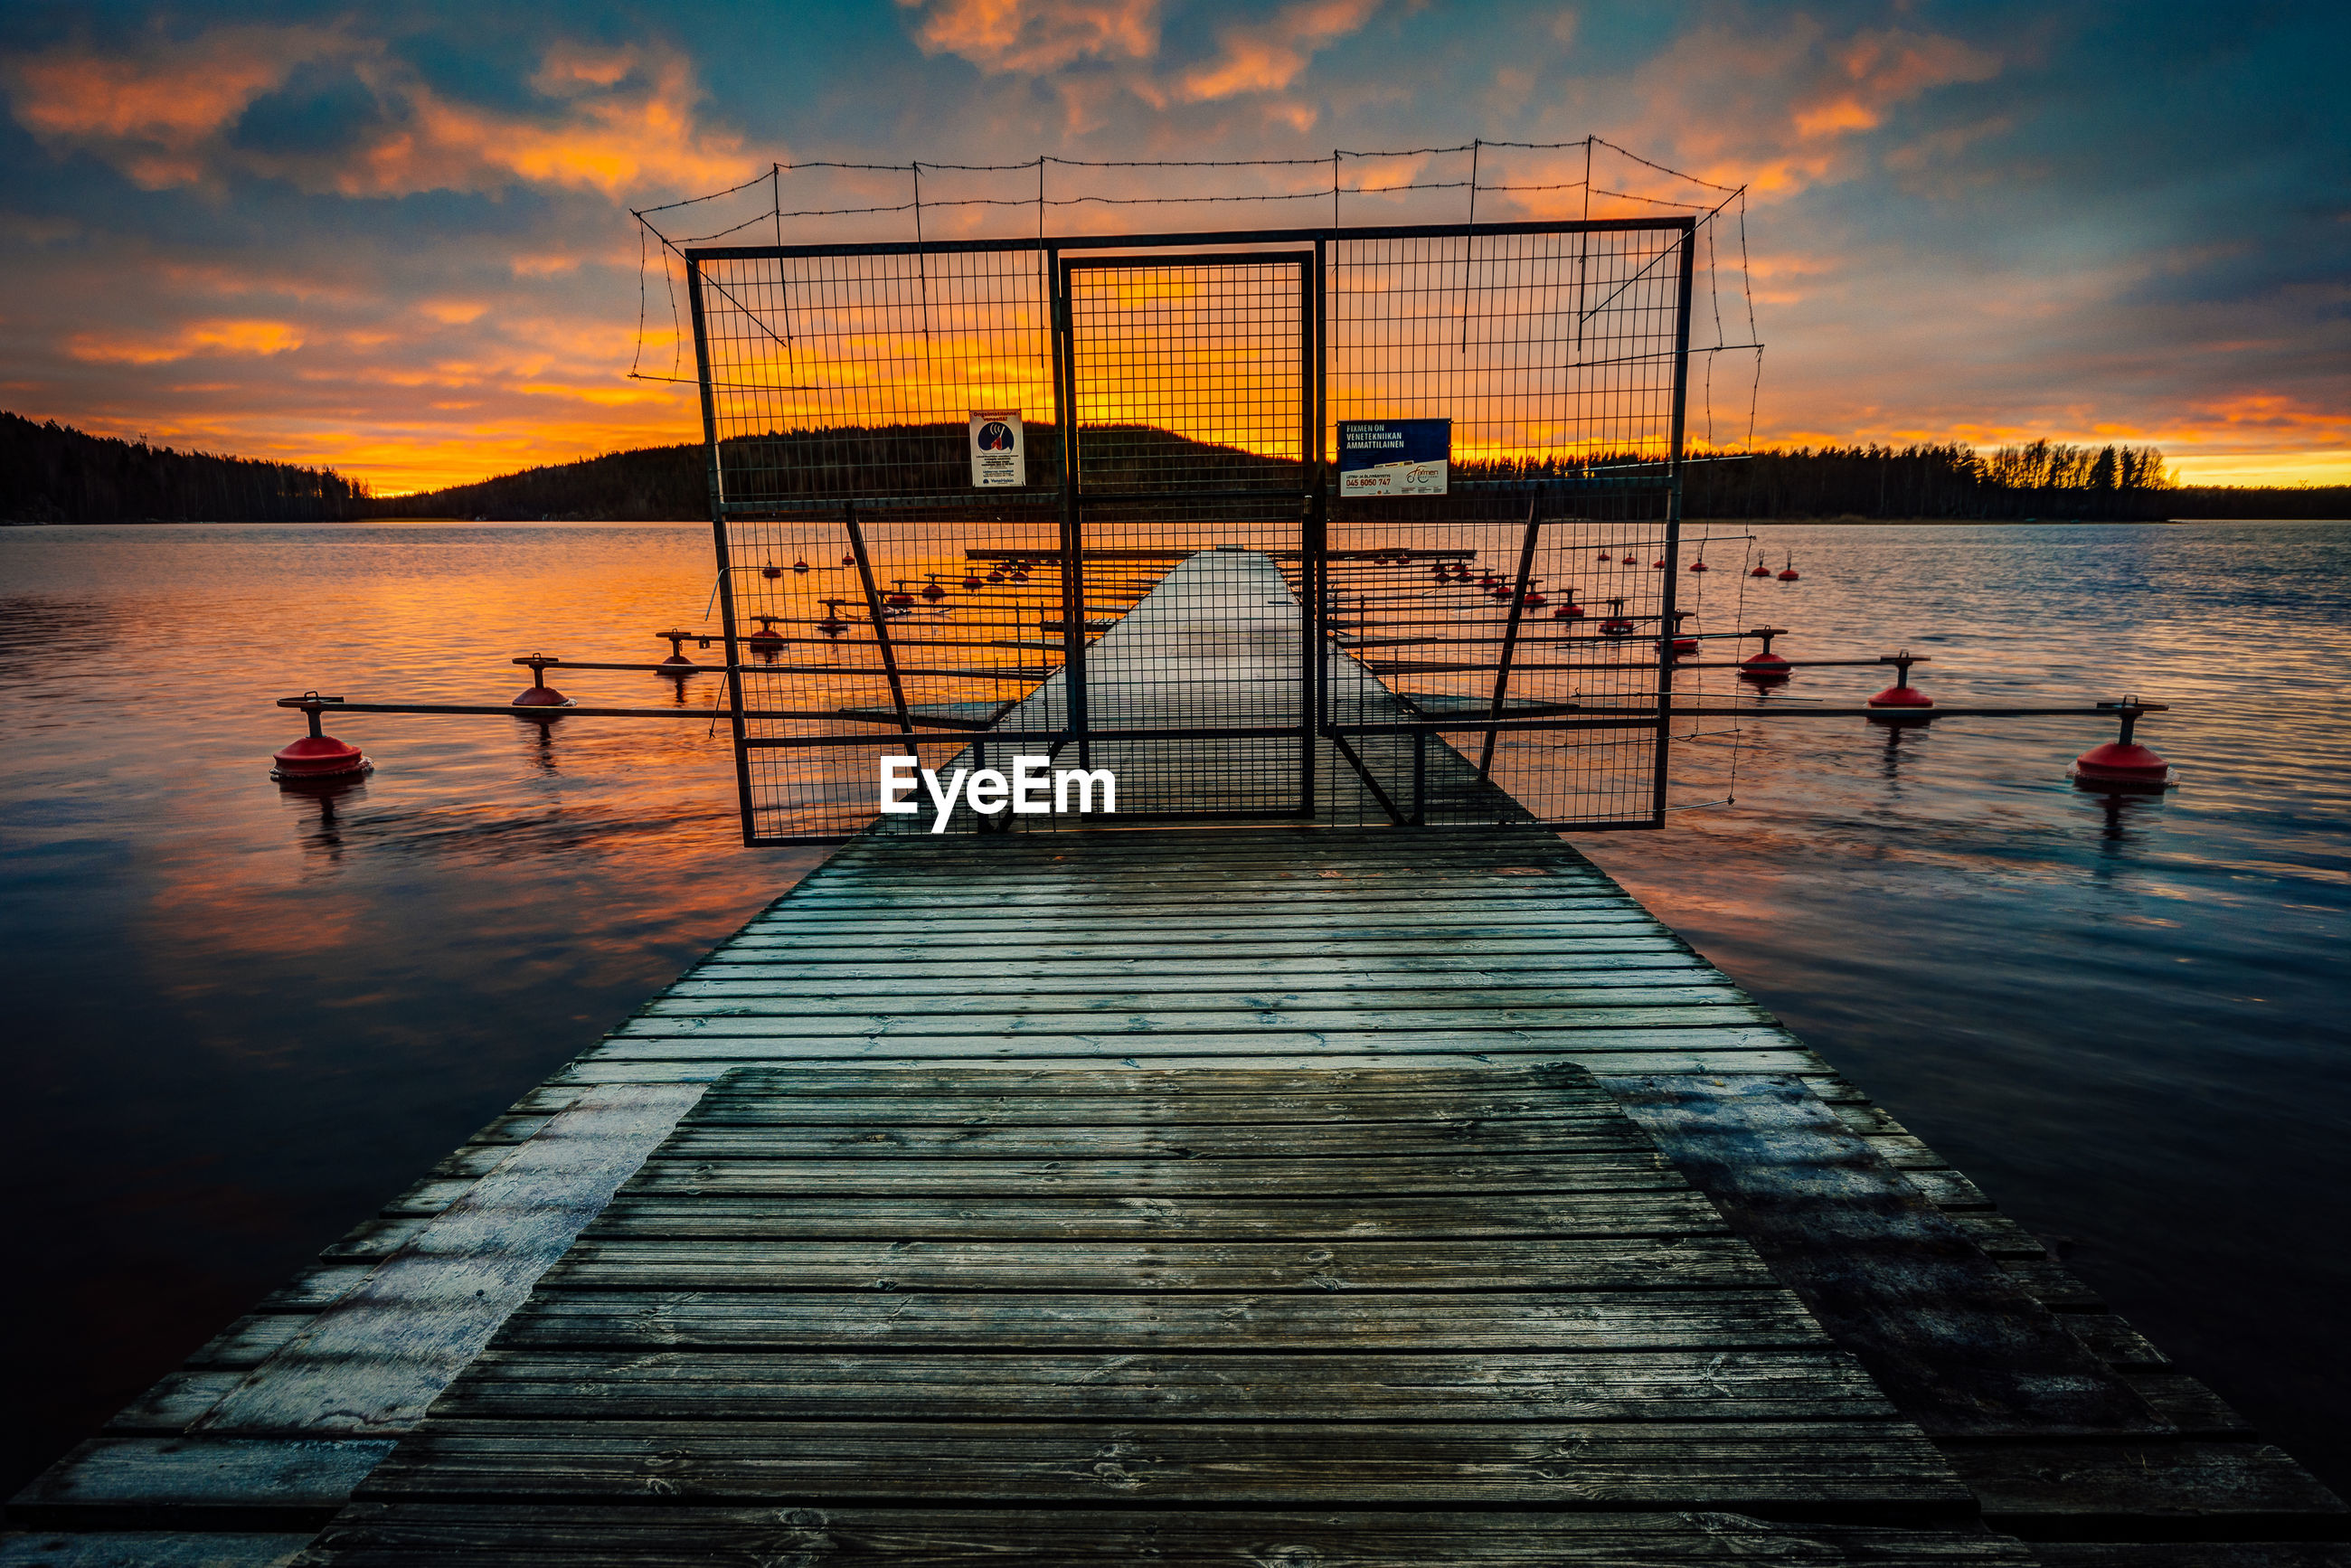 Closed gate on jetty amidst lake against sky during sunset